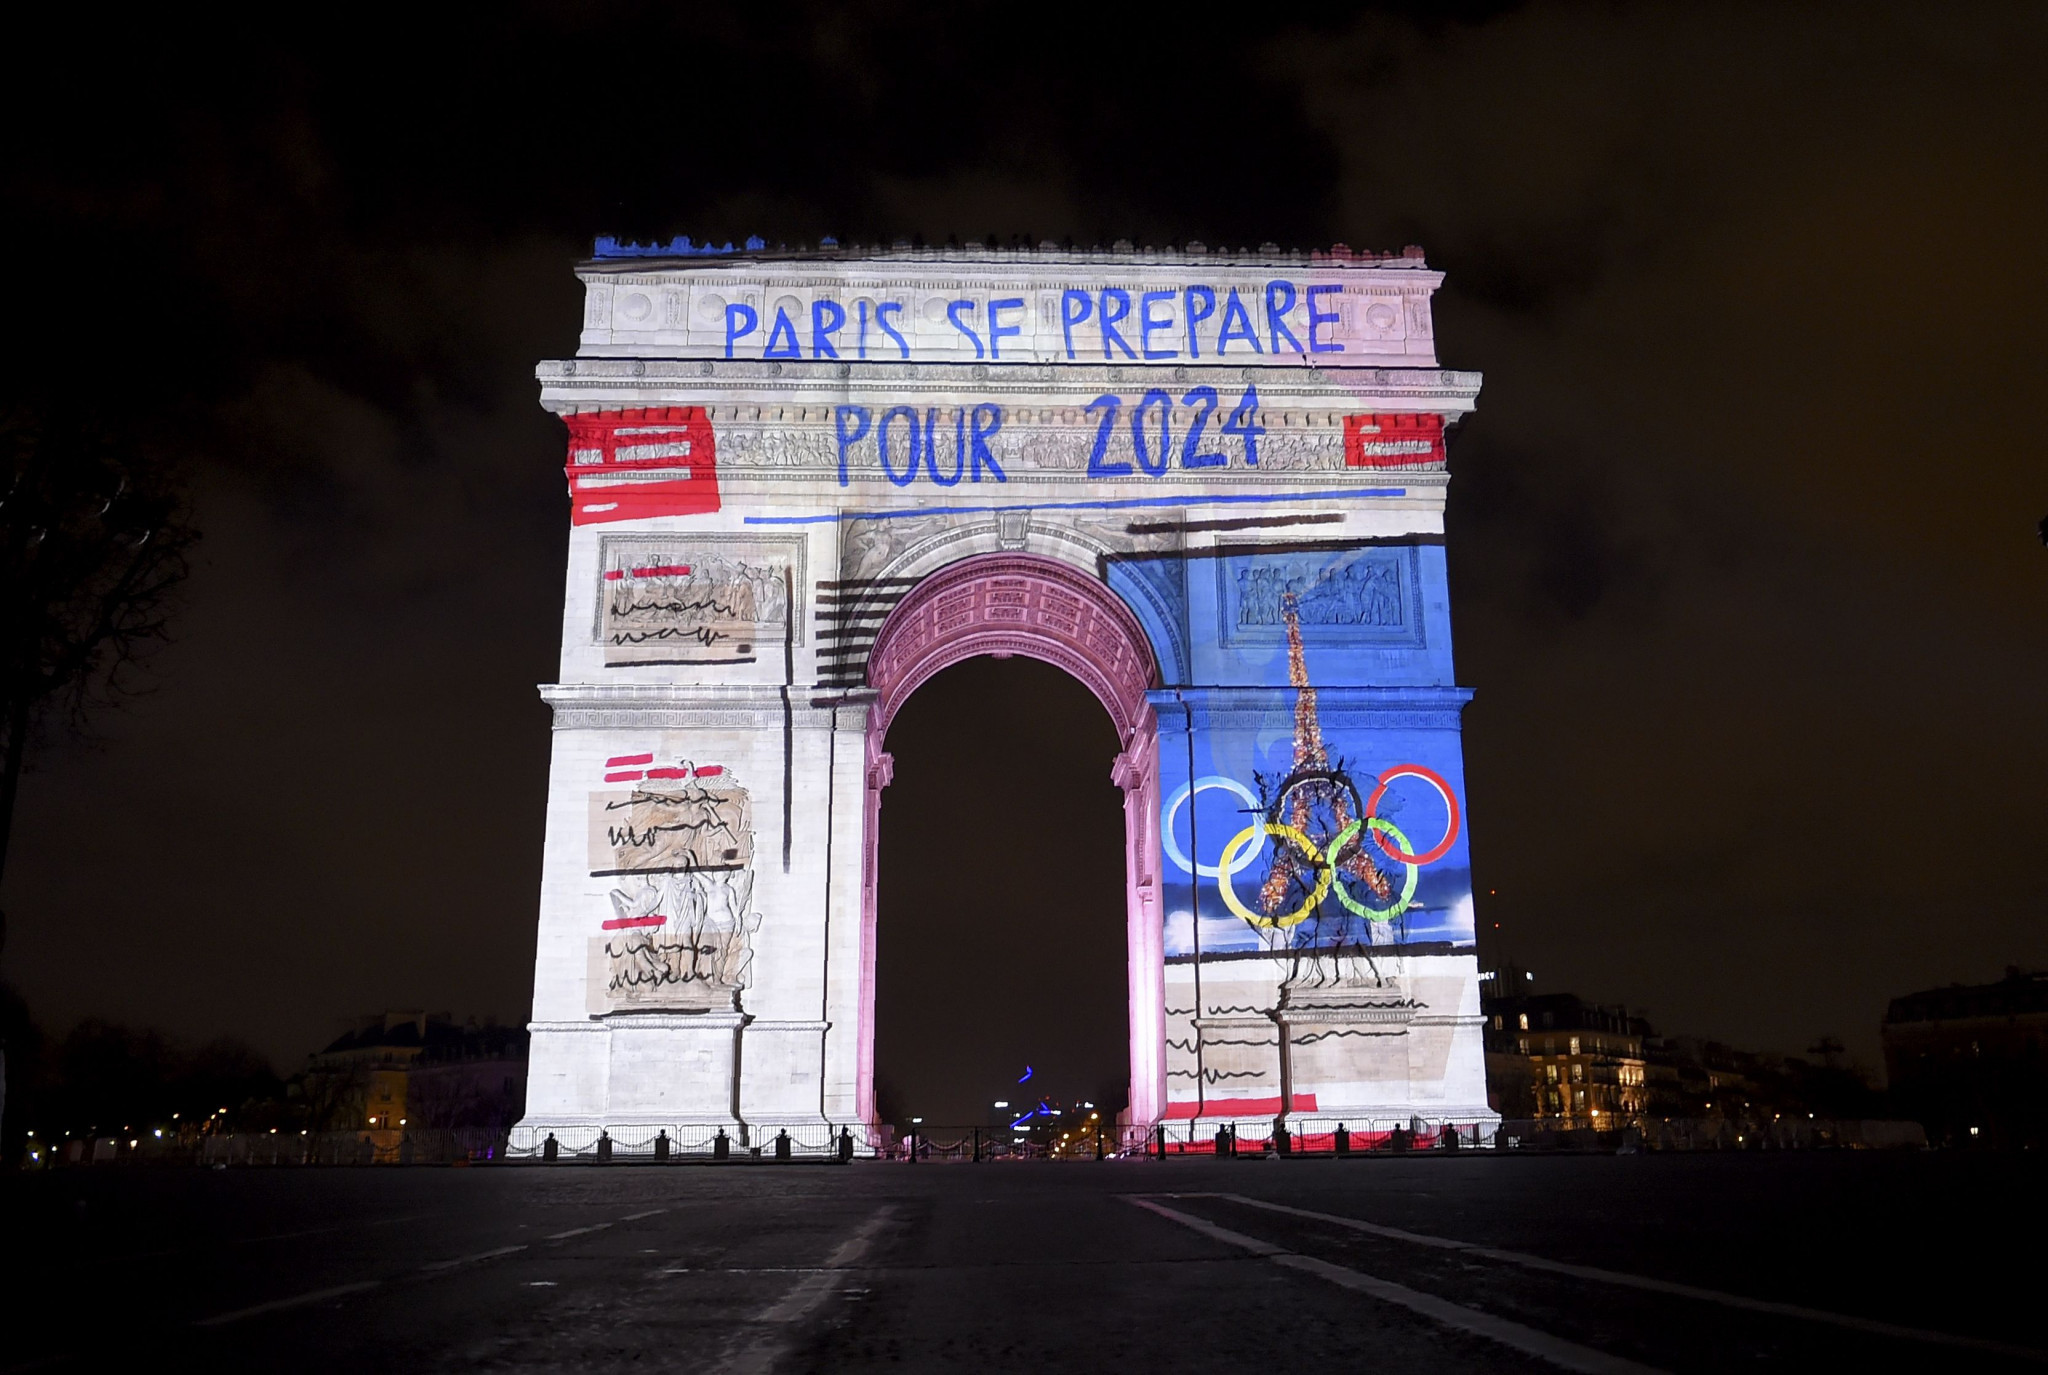 The challenge will be run on the Champs Elysées ©Getty Images